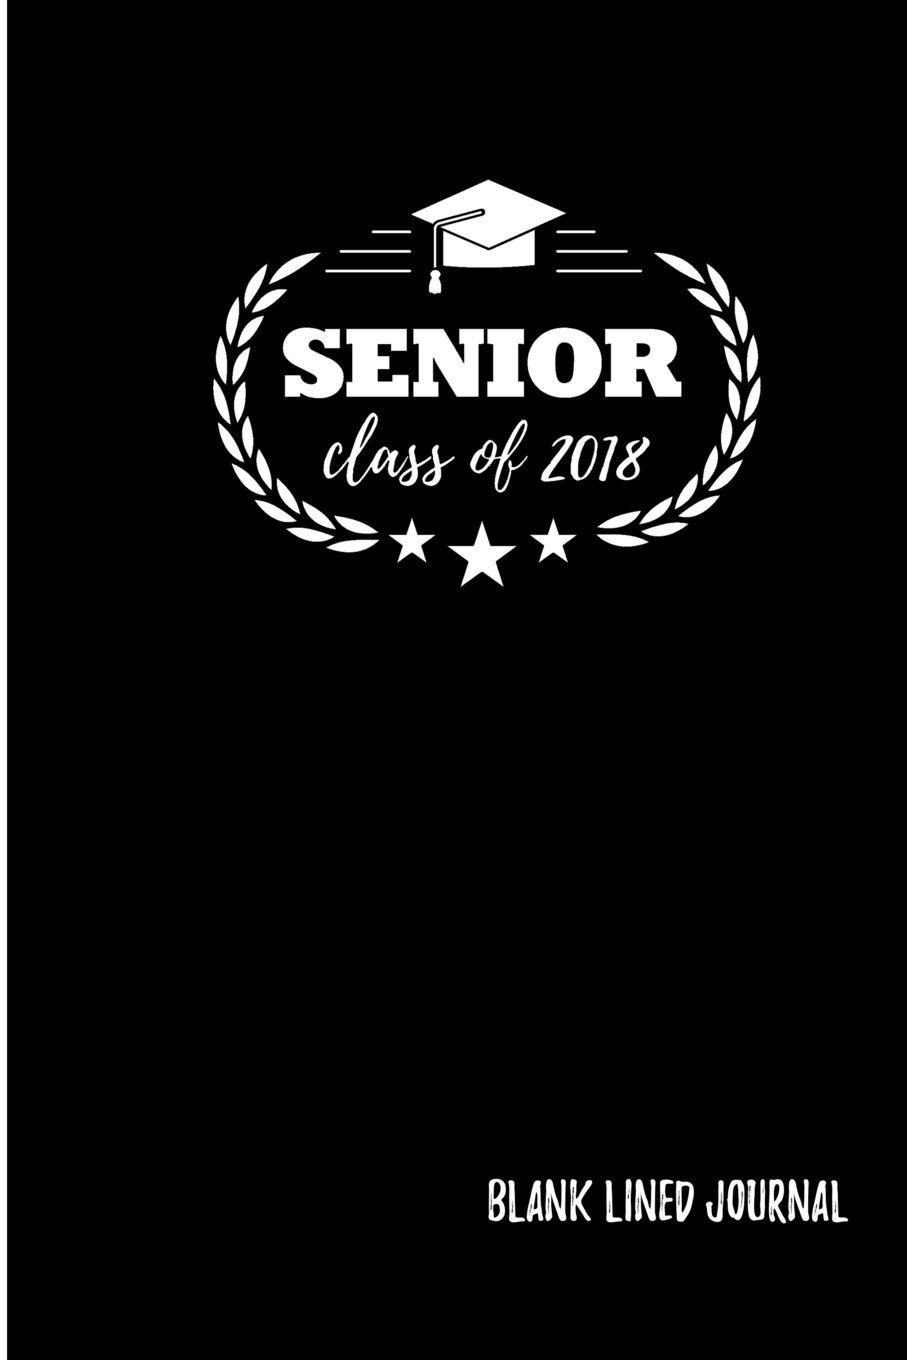 Senior Class of 2018: Blank Lined Journal (Gifts for Graduation) (Volume 3) pdf